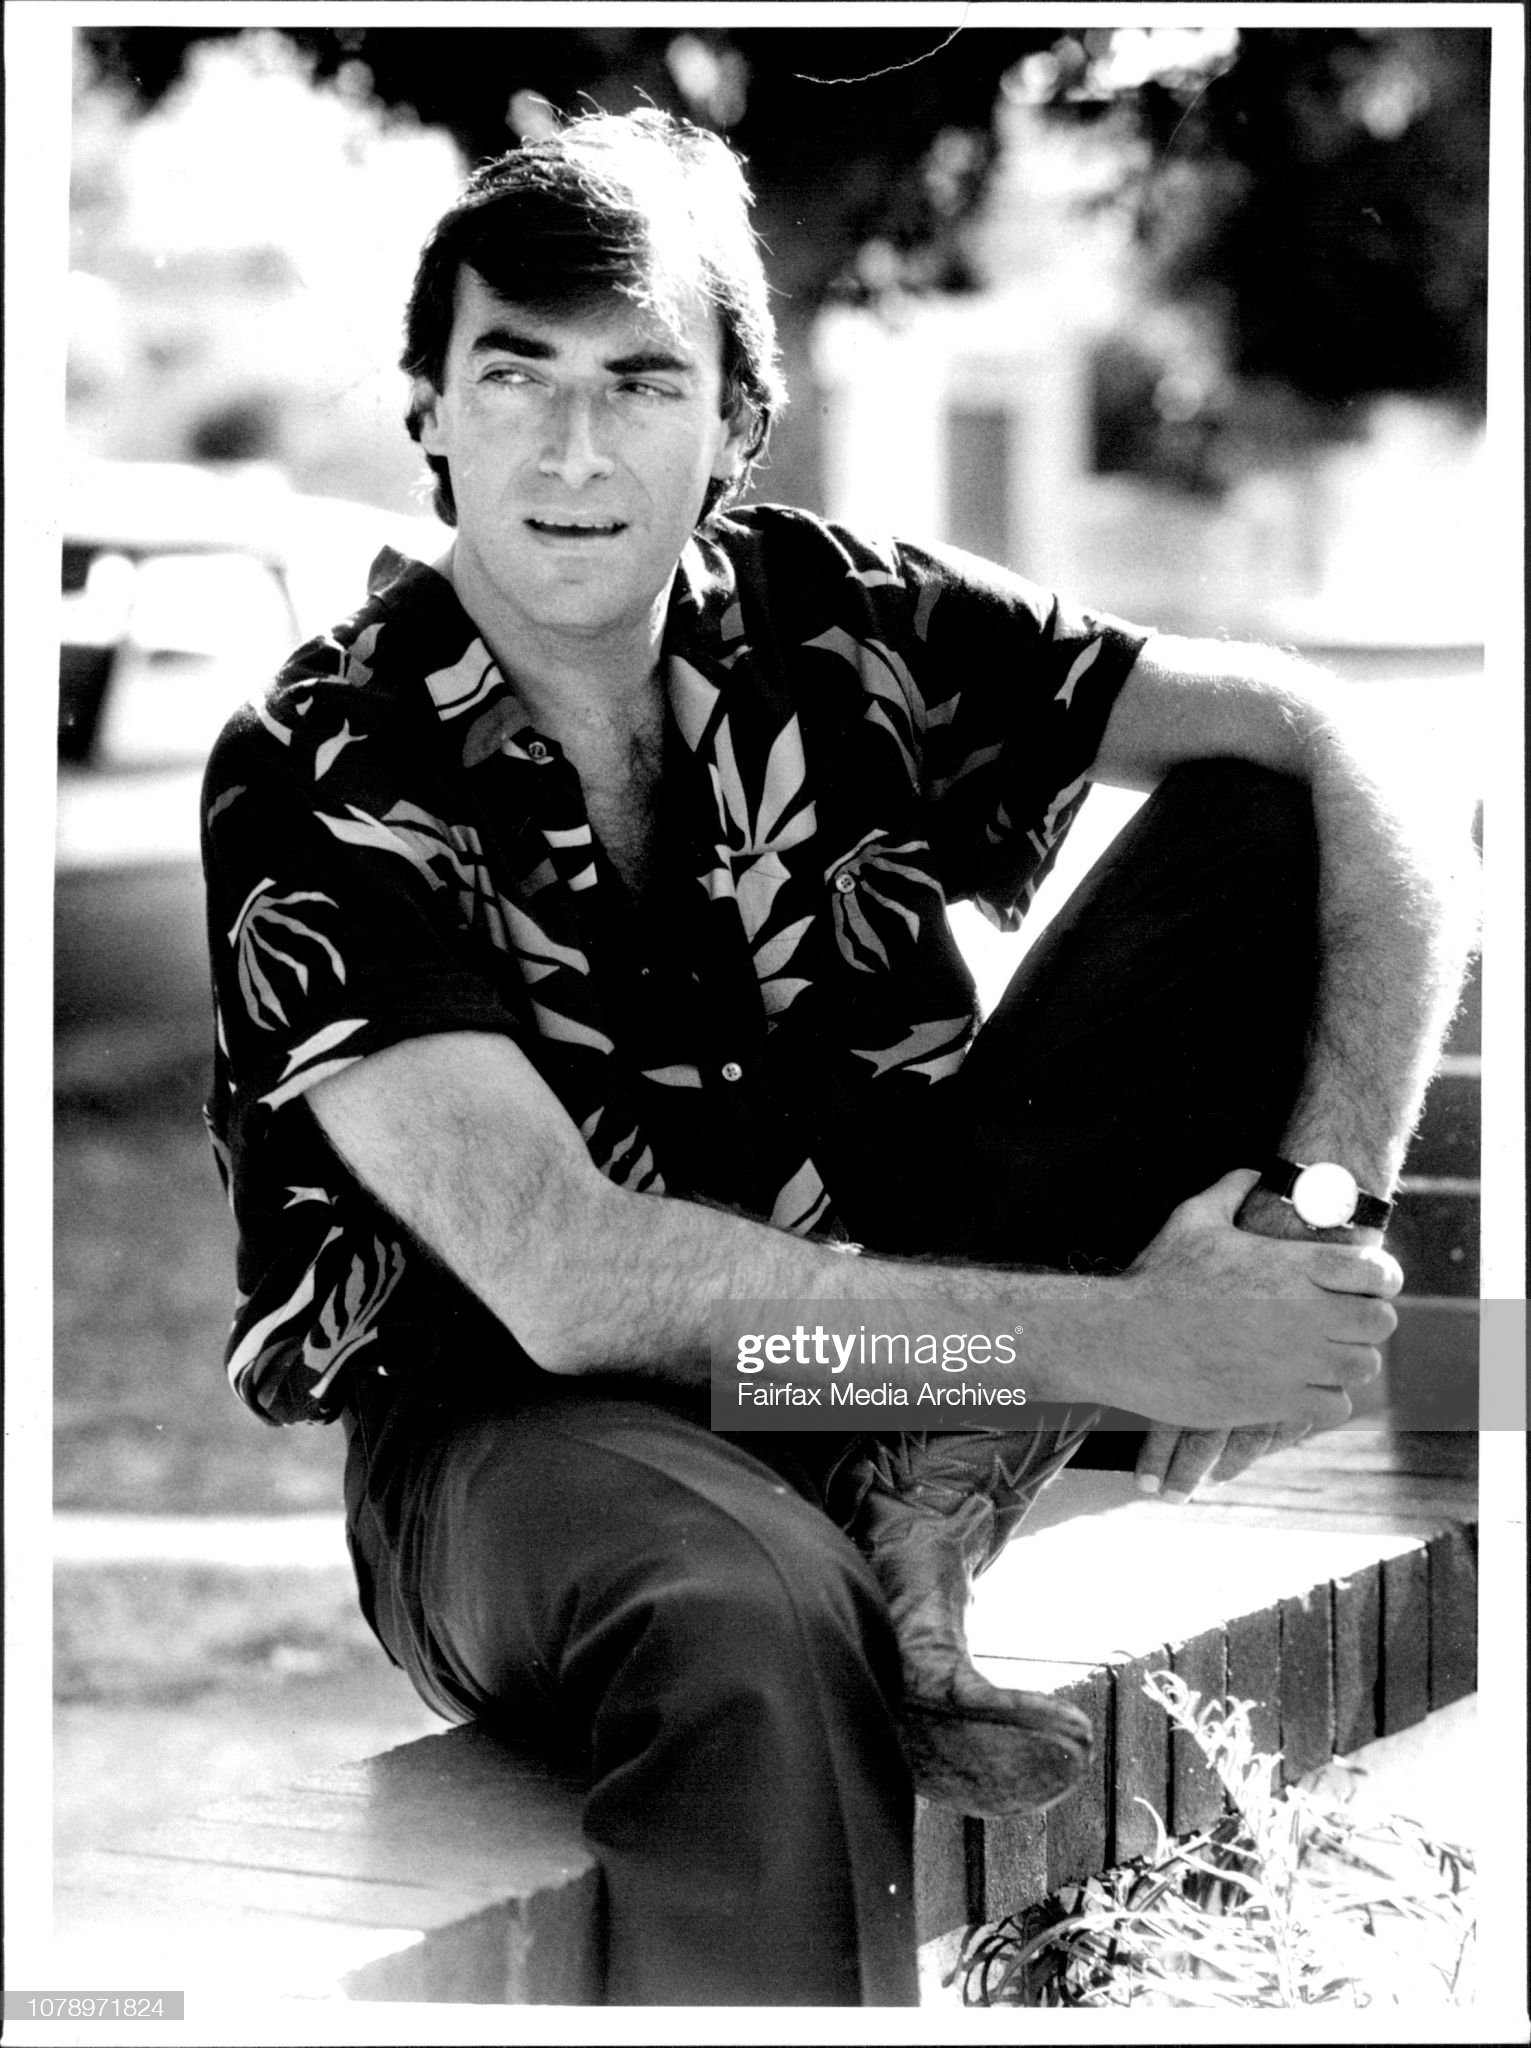 thaao-penghlis-former-star-of-us-soapy-days-of-our-livespictured-at-picture-id1078971824